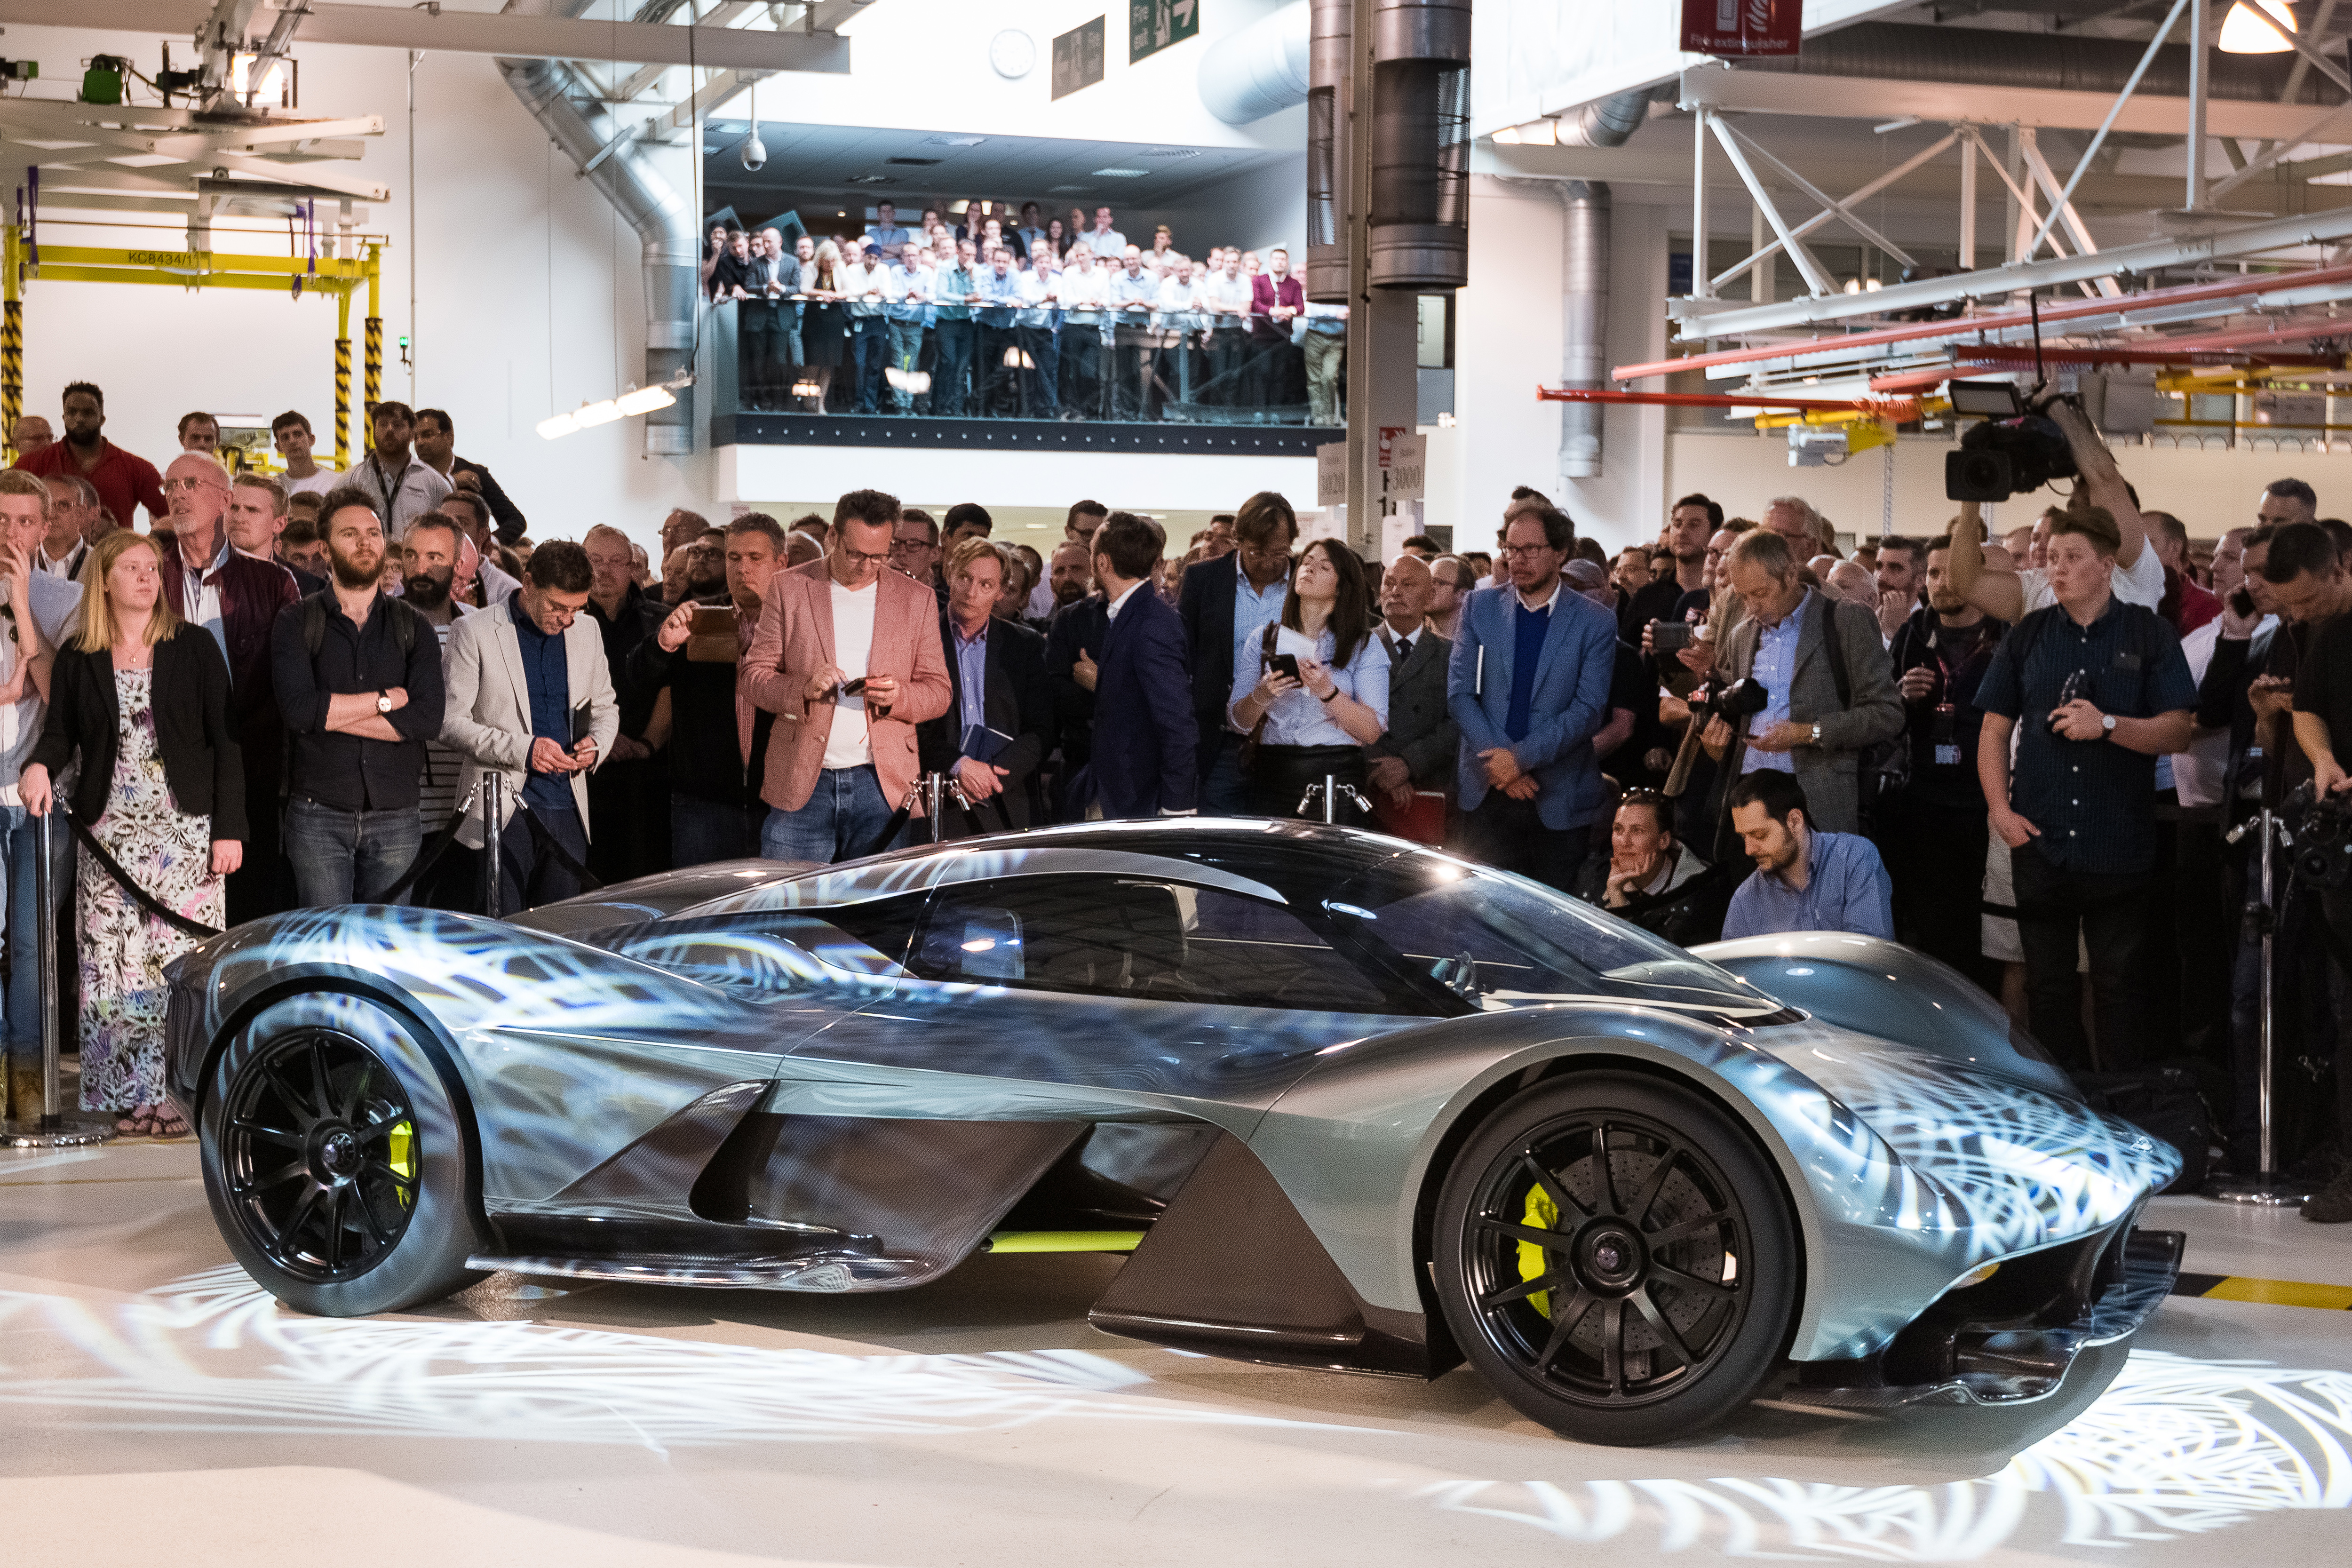 Aston Martin and Red Bull unveil its hypercar, which will go into production in 2018.